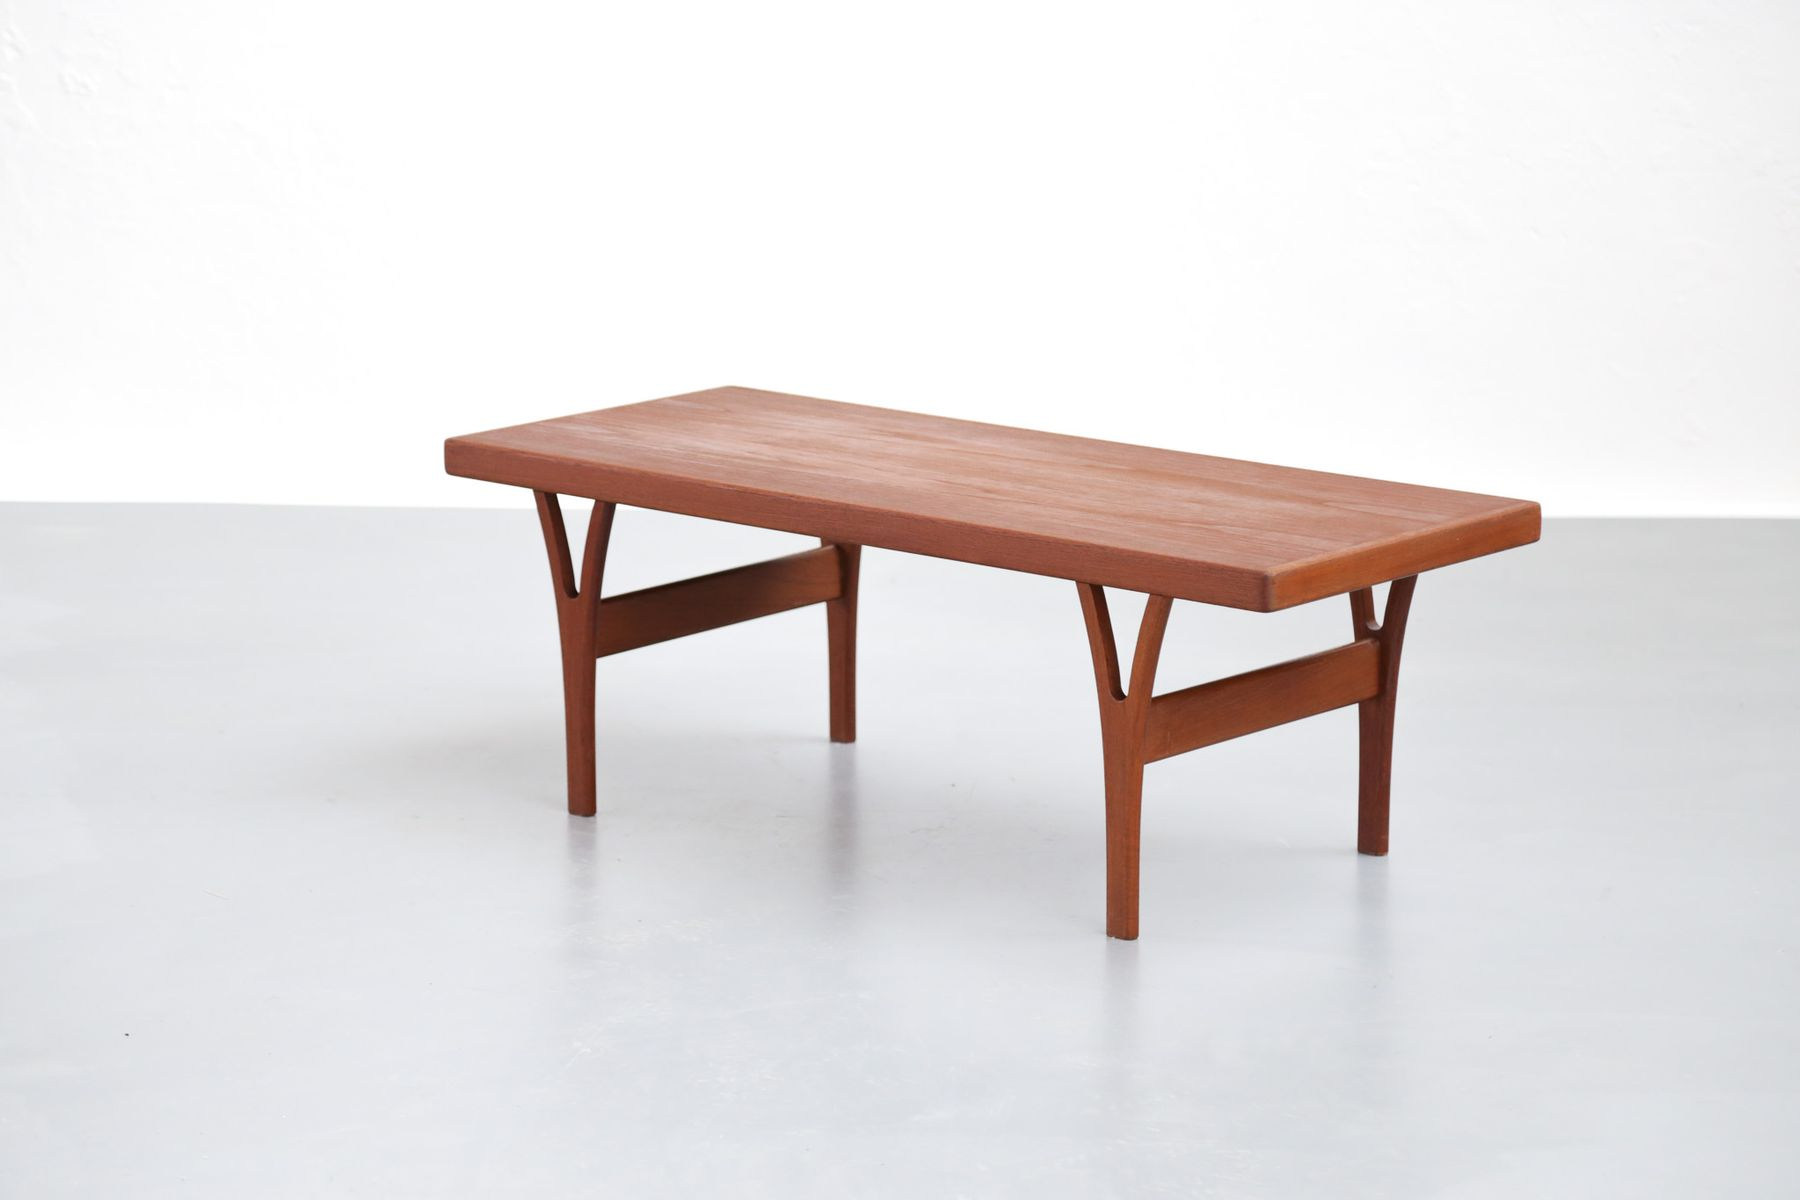 vintage danish coffee table in teak, 1960s for sale at pamono